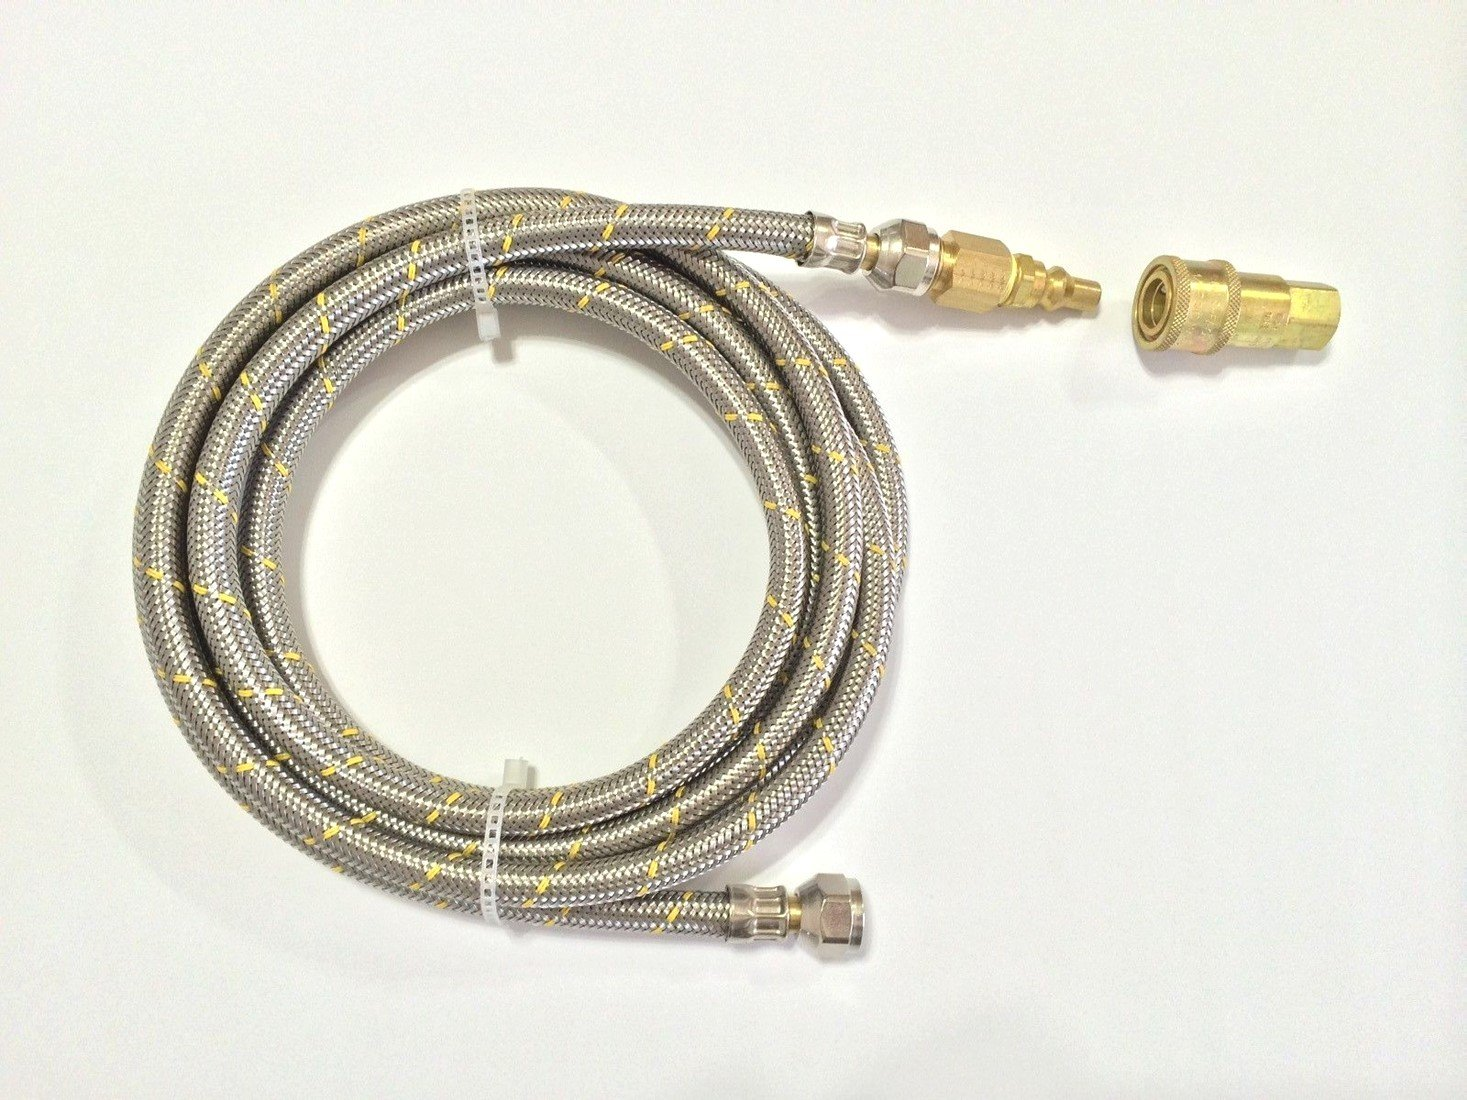 Camper Parts- RV Motorhome LP Gas 10ft Quick Connect Stainless Steel Braided Hose Grill BBQ by Getza